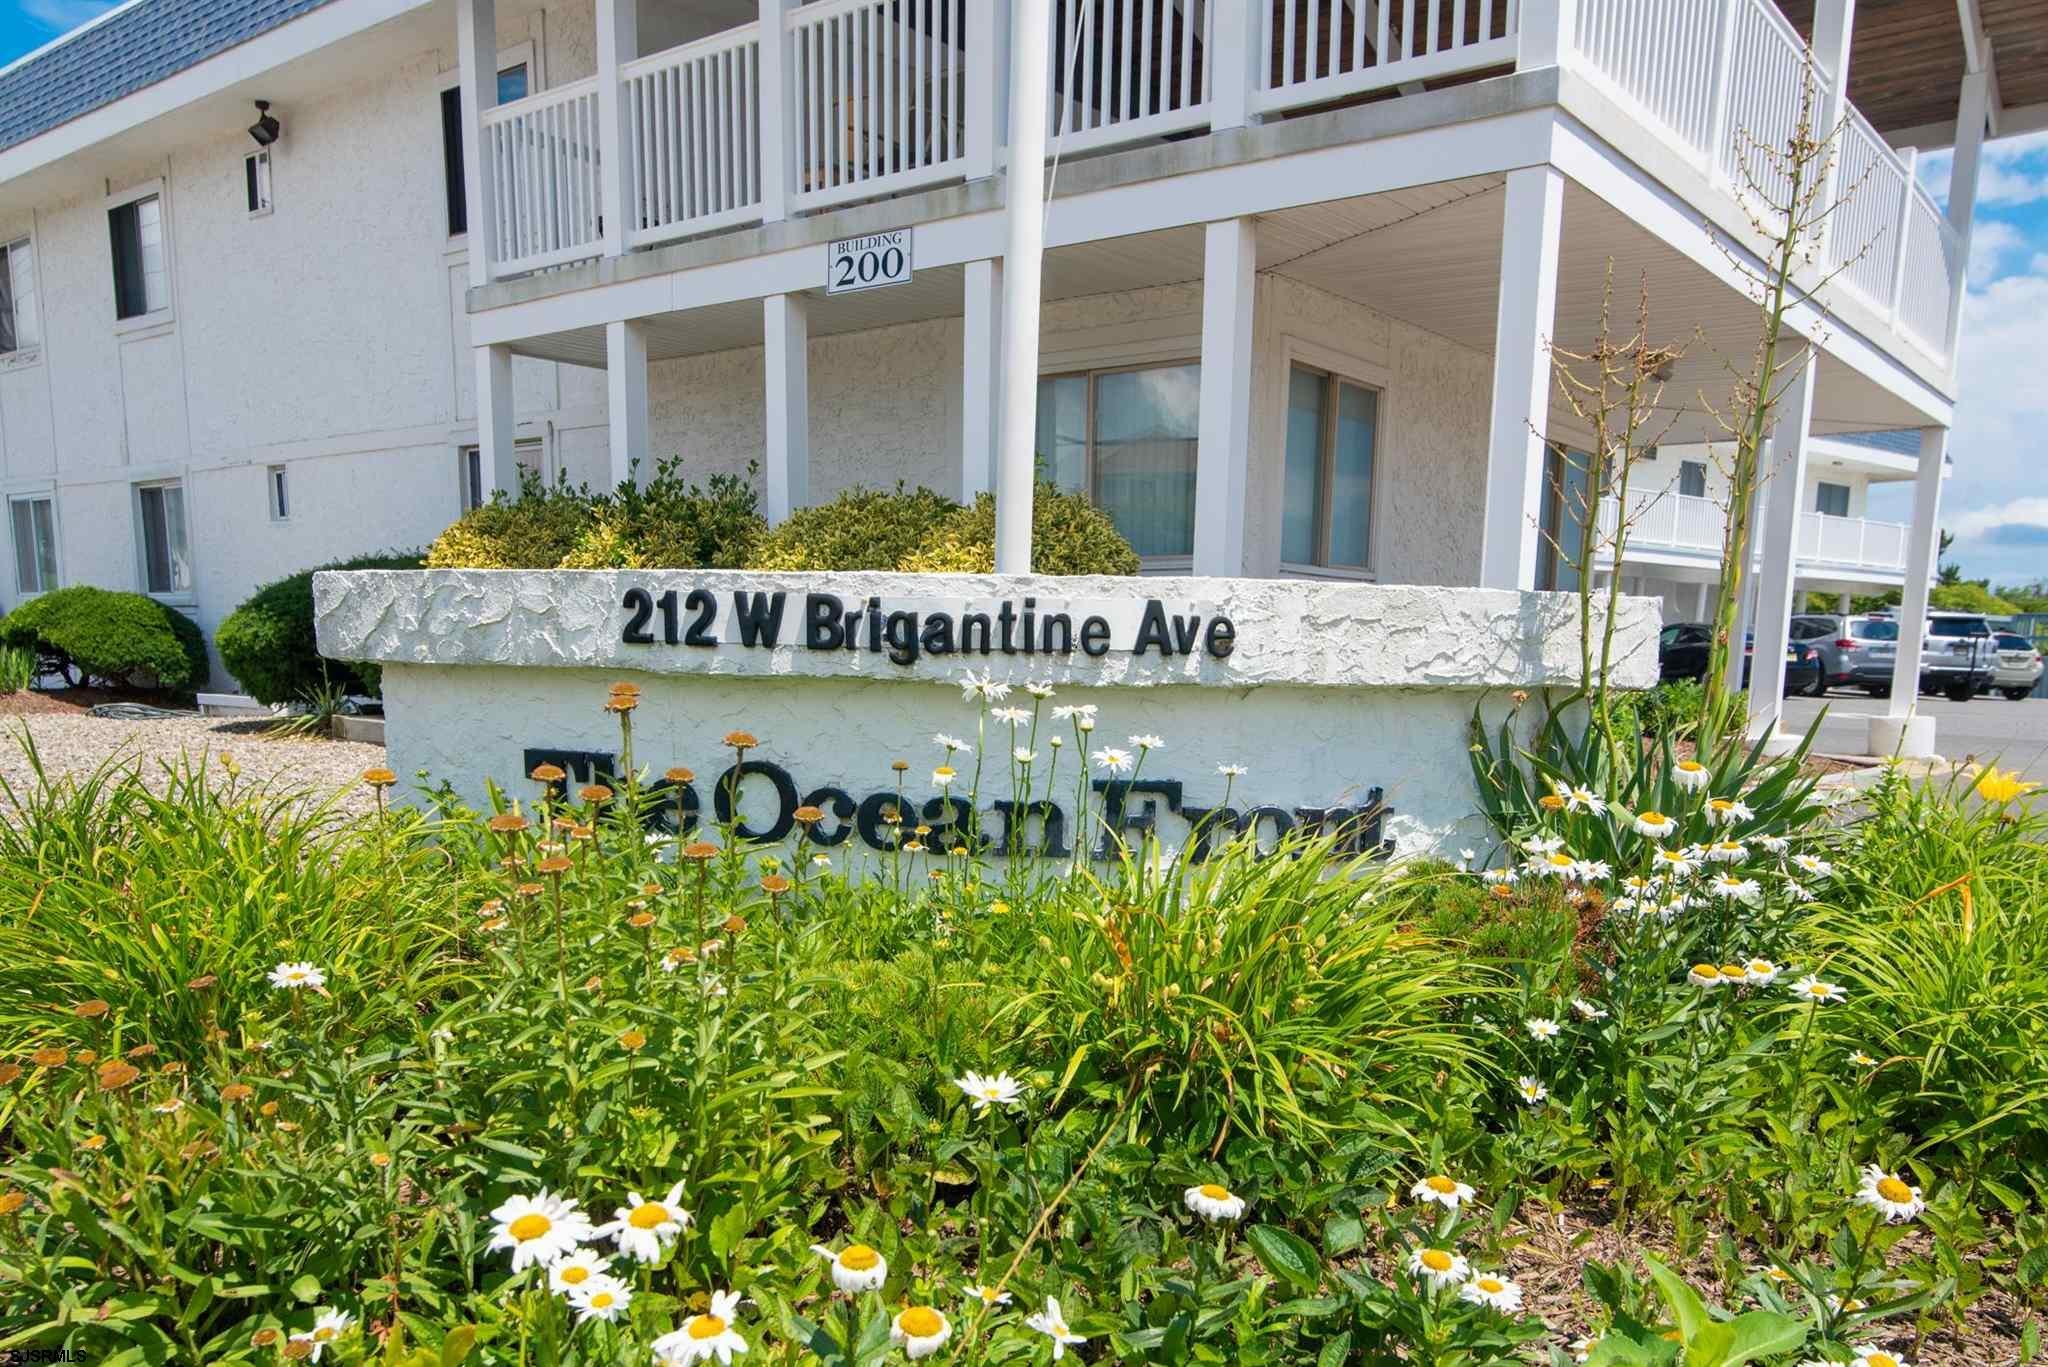 Direct Ocean Front Condo, First floor Nicely done over with new flooring, and updated bathroom. ! be